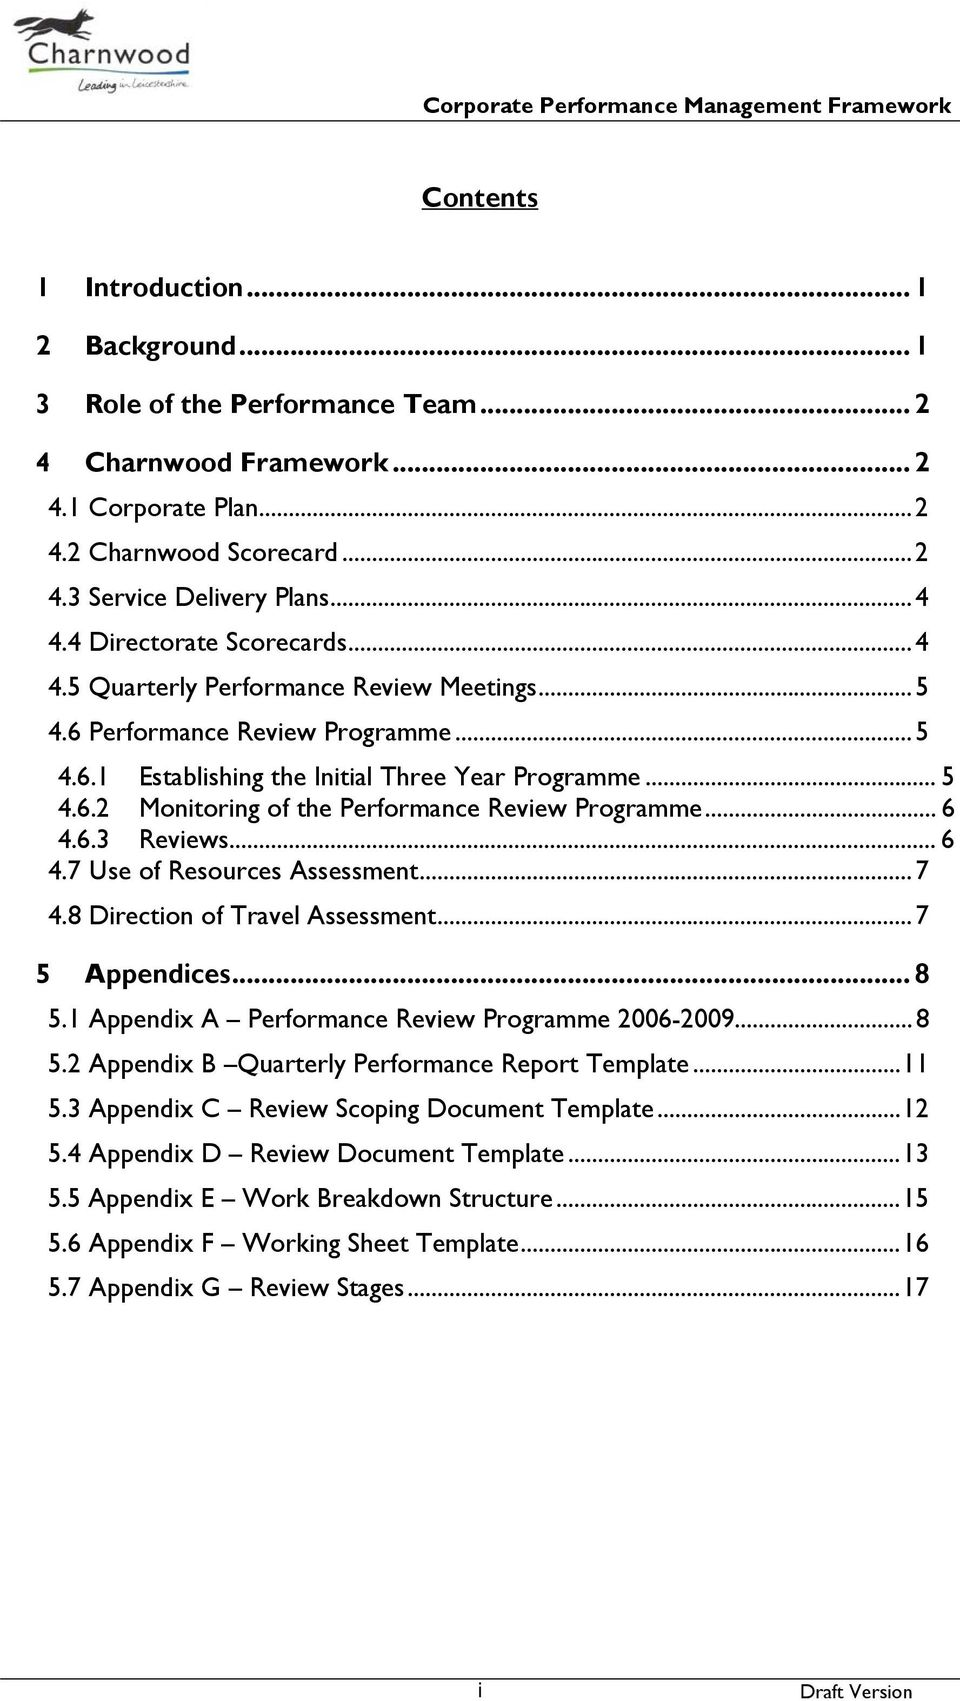 .. 6 4.6.3 Reviews... 6 4.7 Use of Resources Assessment...7 4.8 Direction of Travel Assessment...7 5 Appendices... 8 5.1 Appendix A Performance Review Programme 2006-2009...8 5.2 Appendix B Quarterly Performance Report Template.